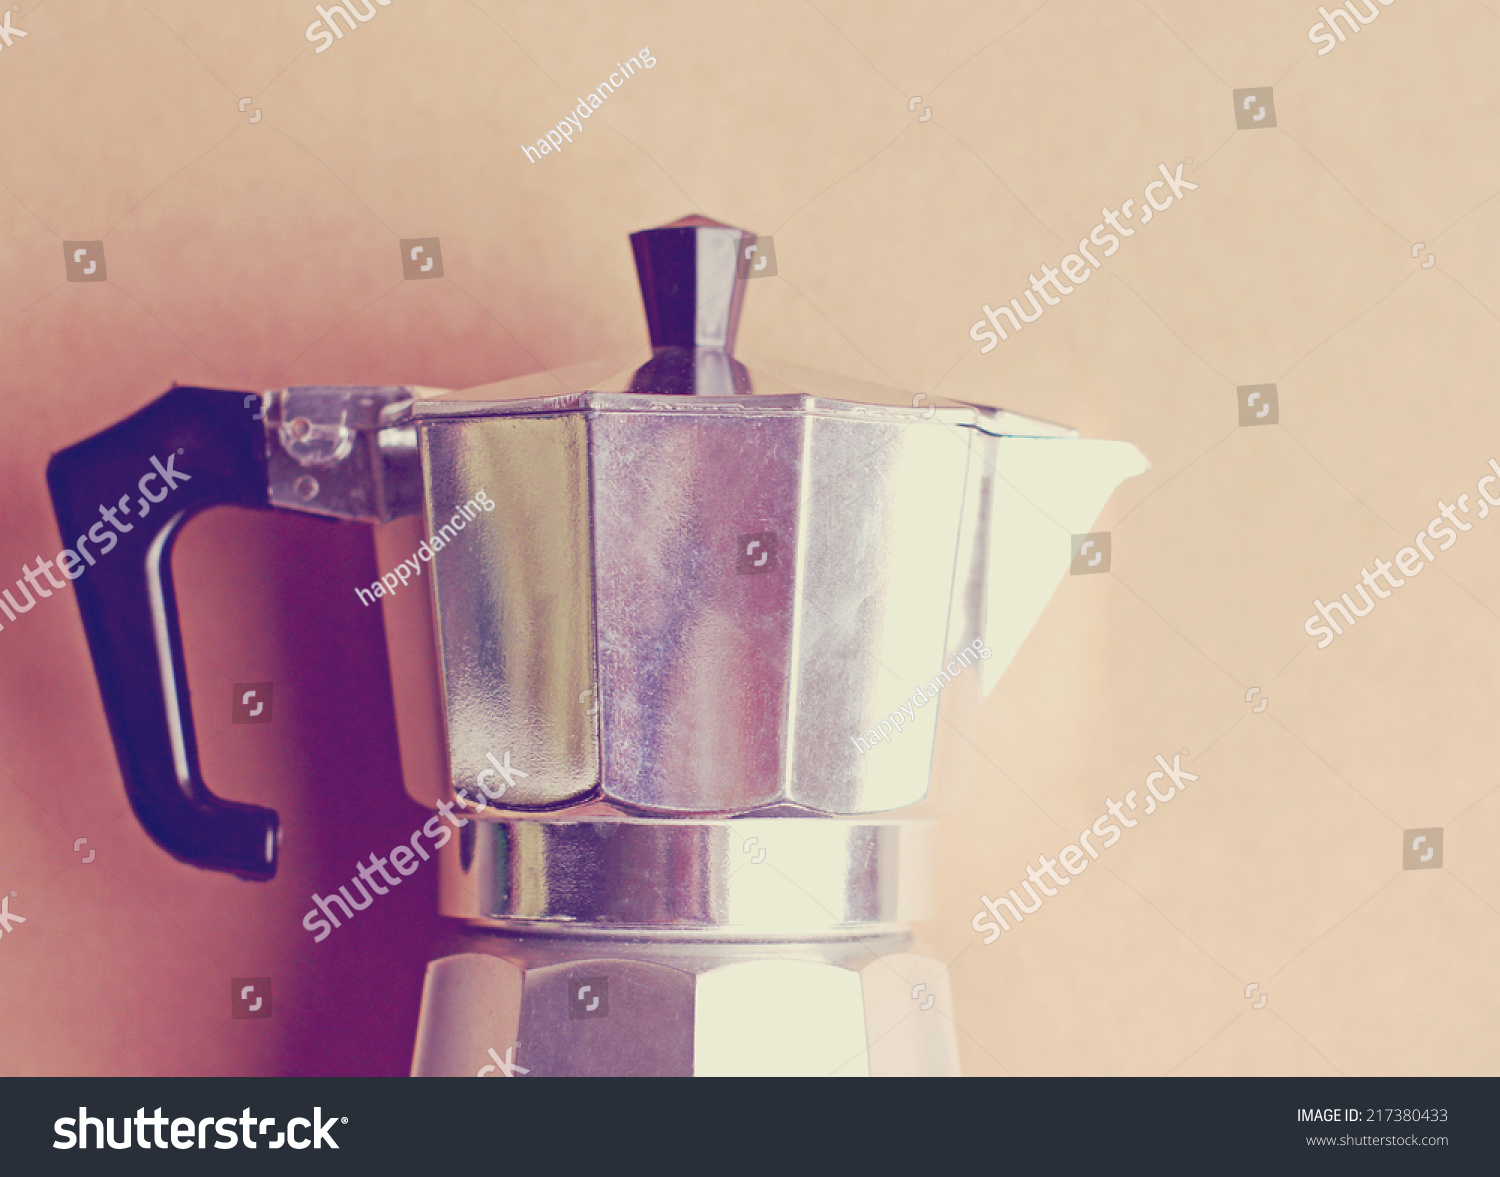 Italian Coffee Maker With Retro Instagram Filter Effect Stock Photo 217380433 : Shutterstock